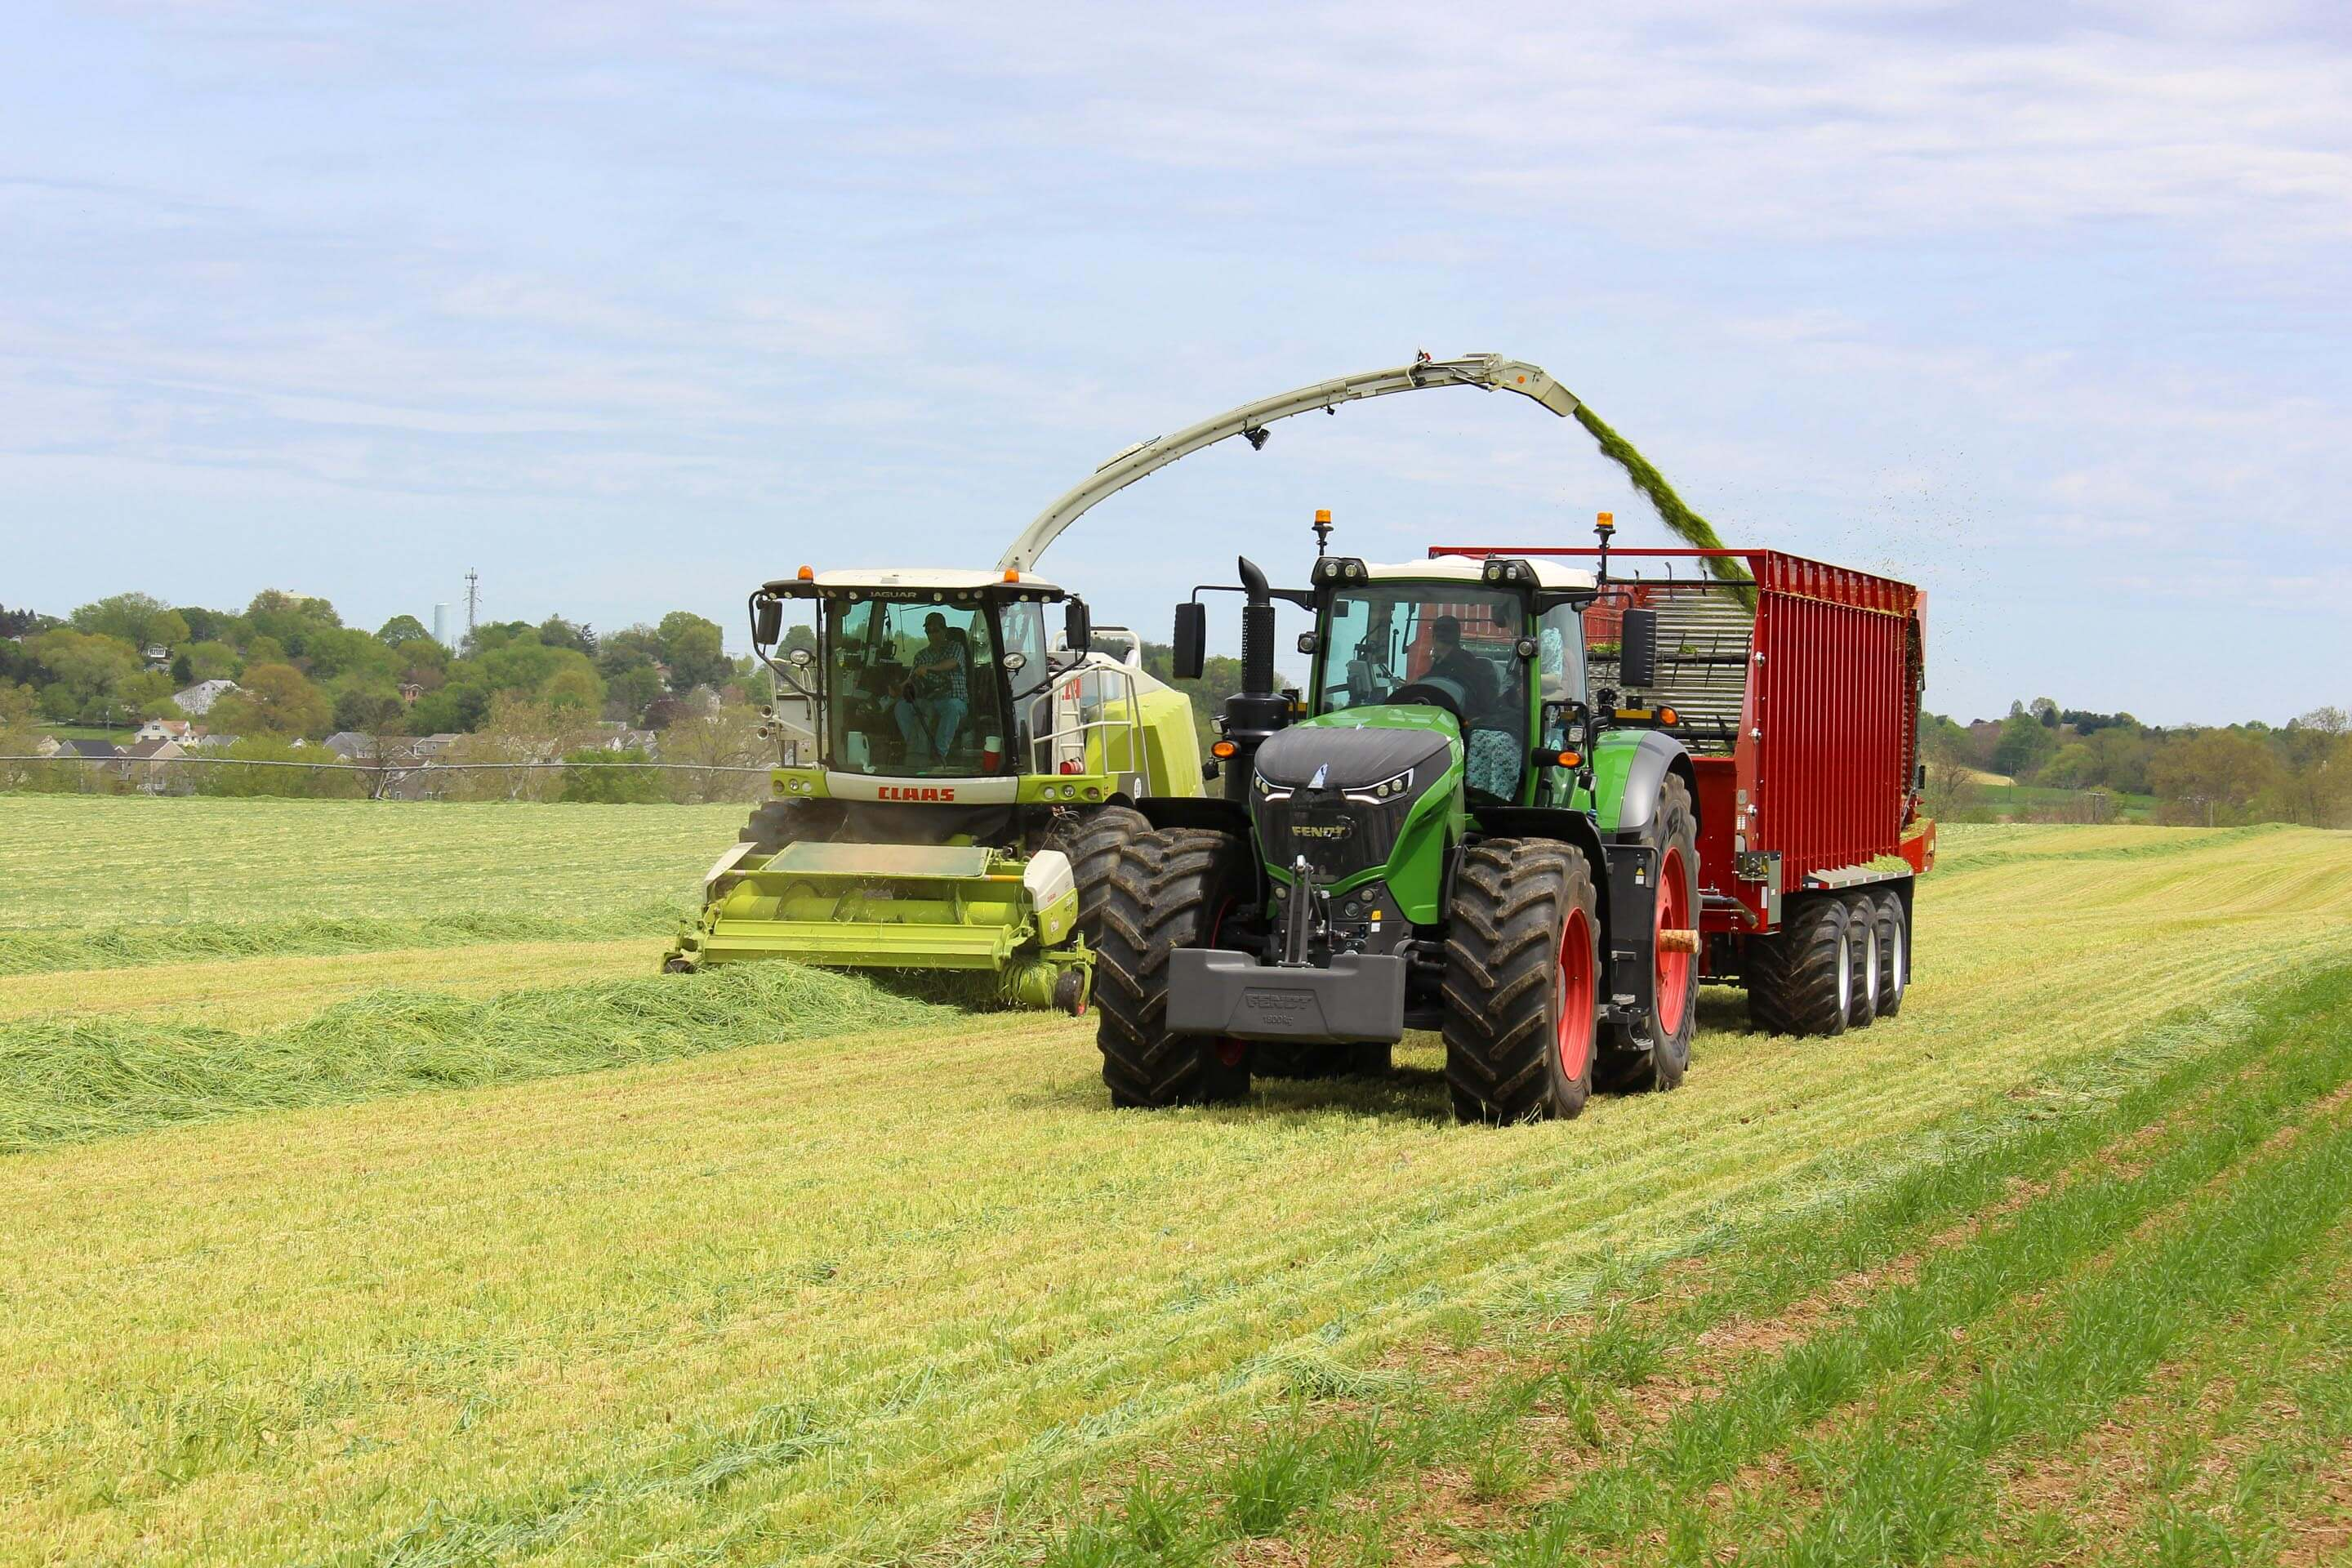 Claas harvester in a field.